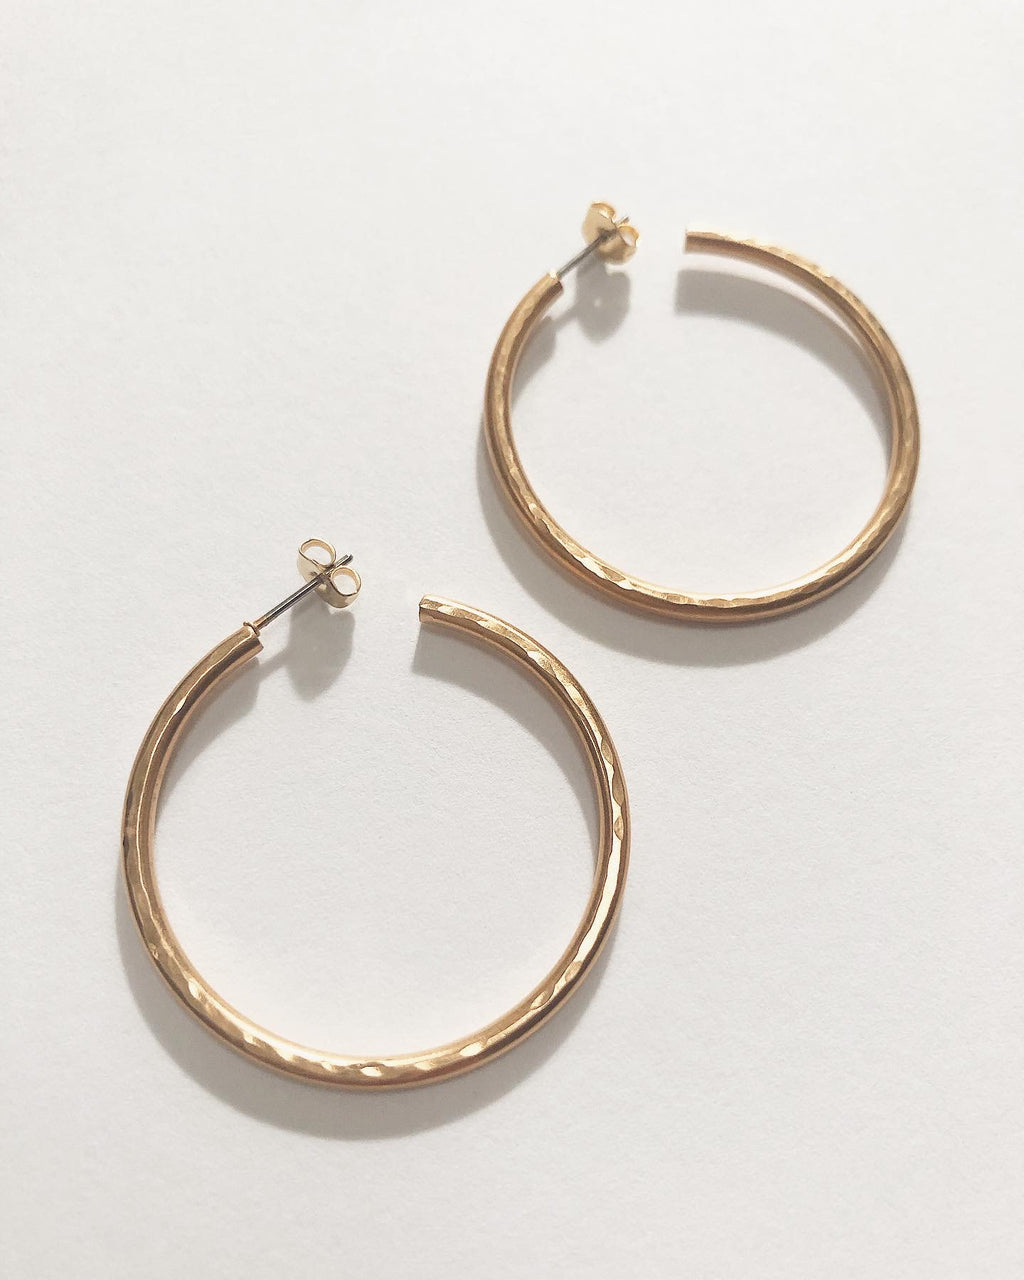 Aquinnah Hammered Hoop Earring - Multiple Colors!